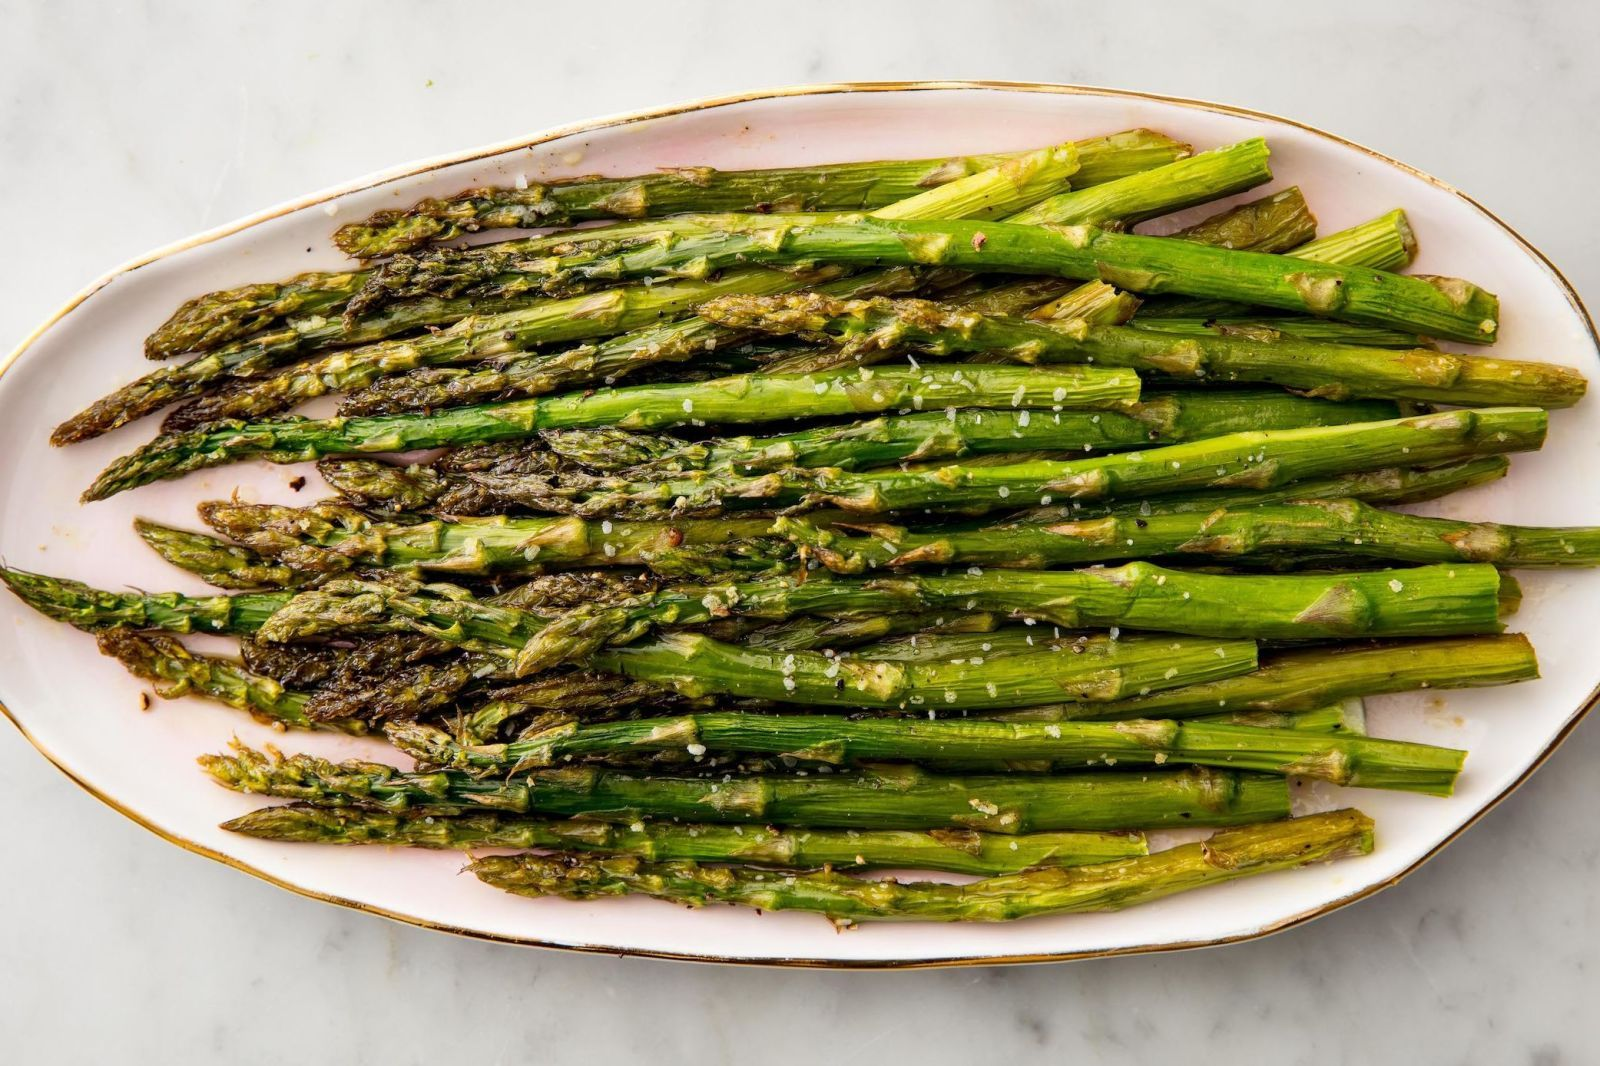 This Oven Roasted Asparagus Makes The Best Vegetable Side Recipe Asparagus Recipes Roasted Easy Asparagus Recipes Grilled Asparagus Recipes